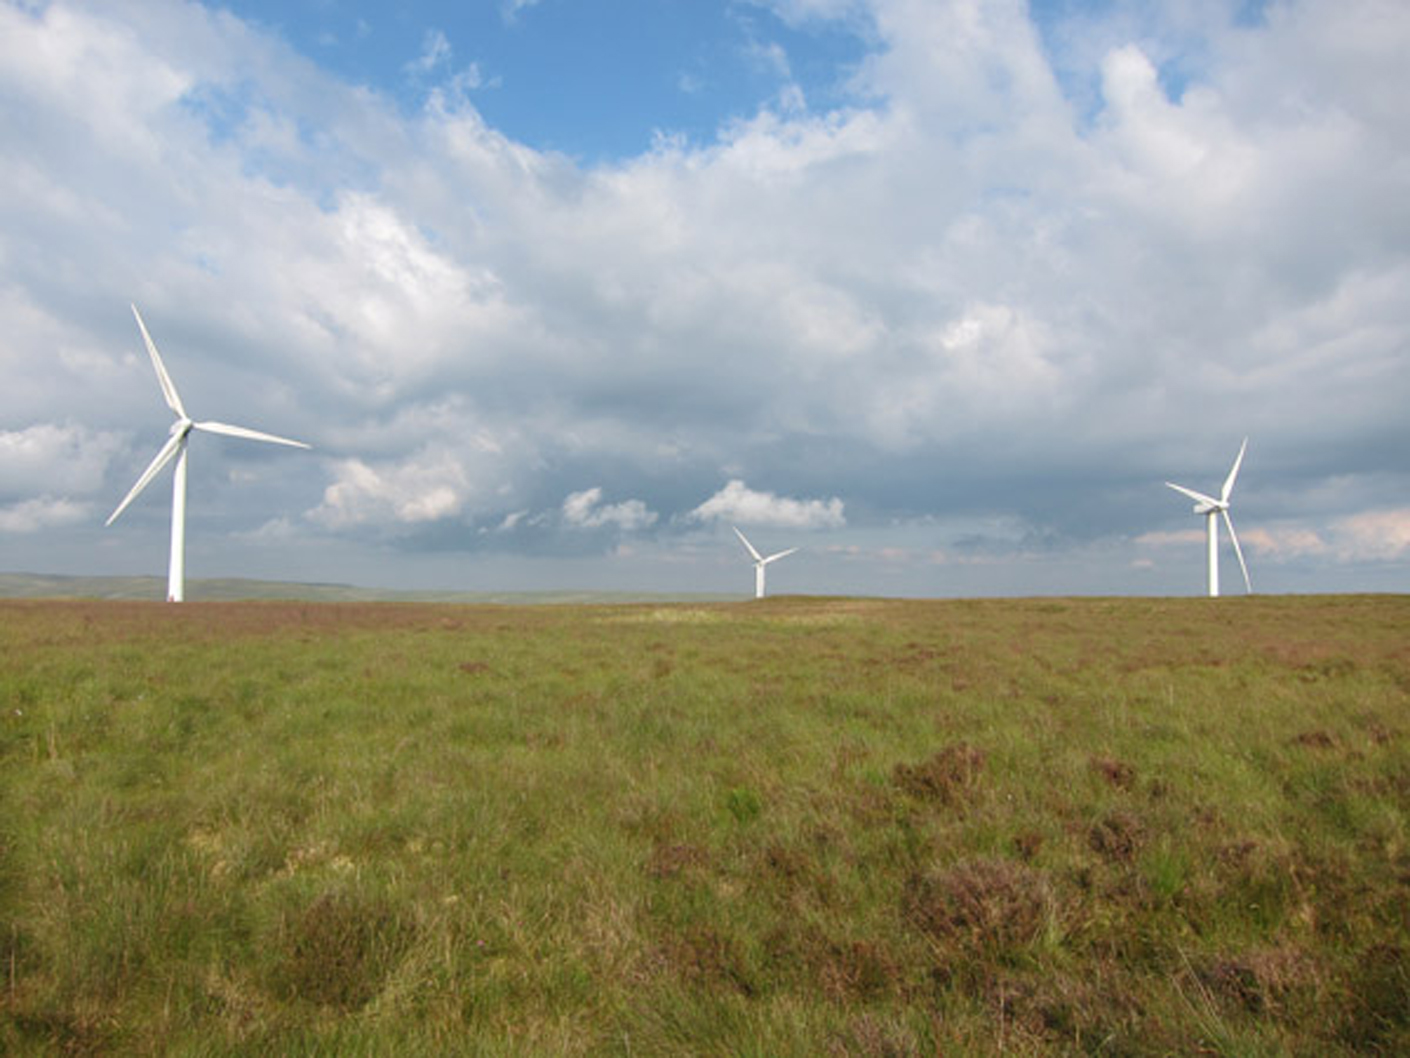 The goal of the 20 mile hike, the wind turbine that was the subject of Jess Owens' film.